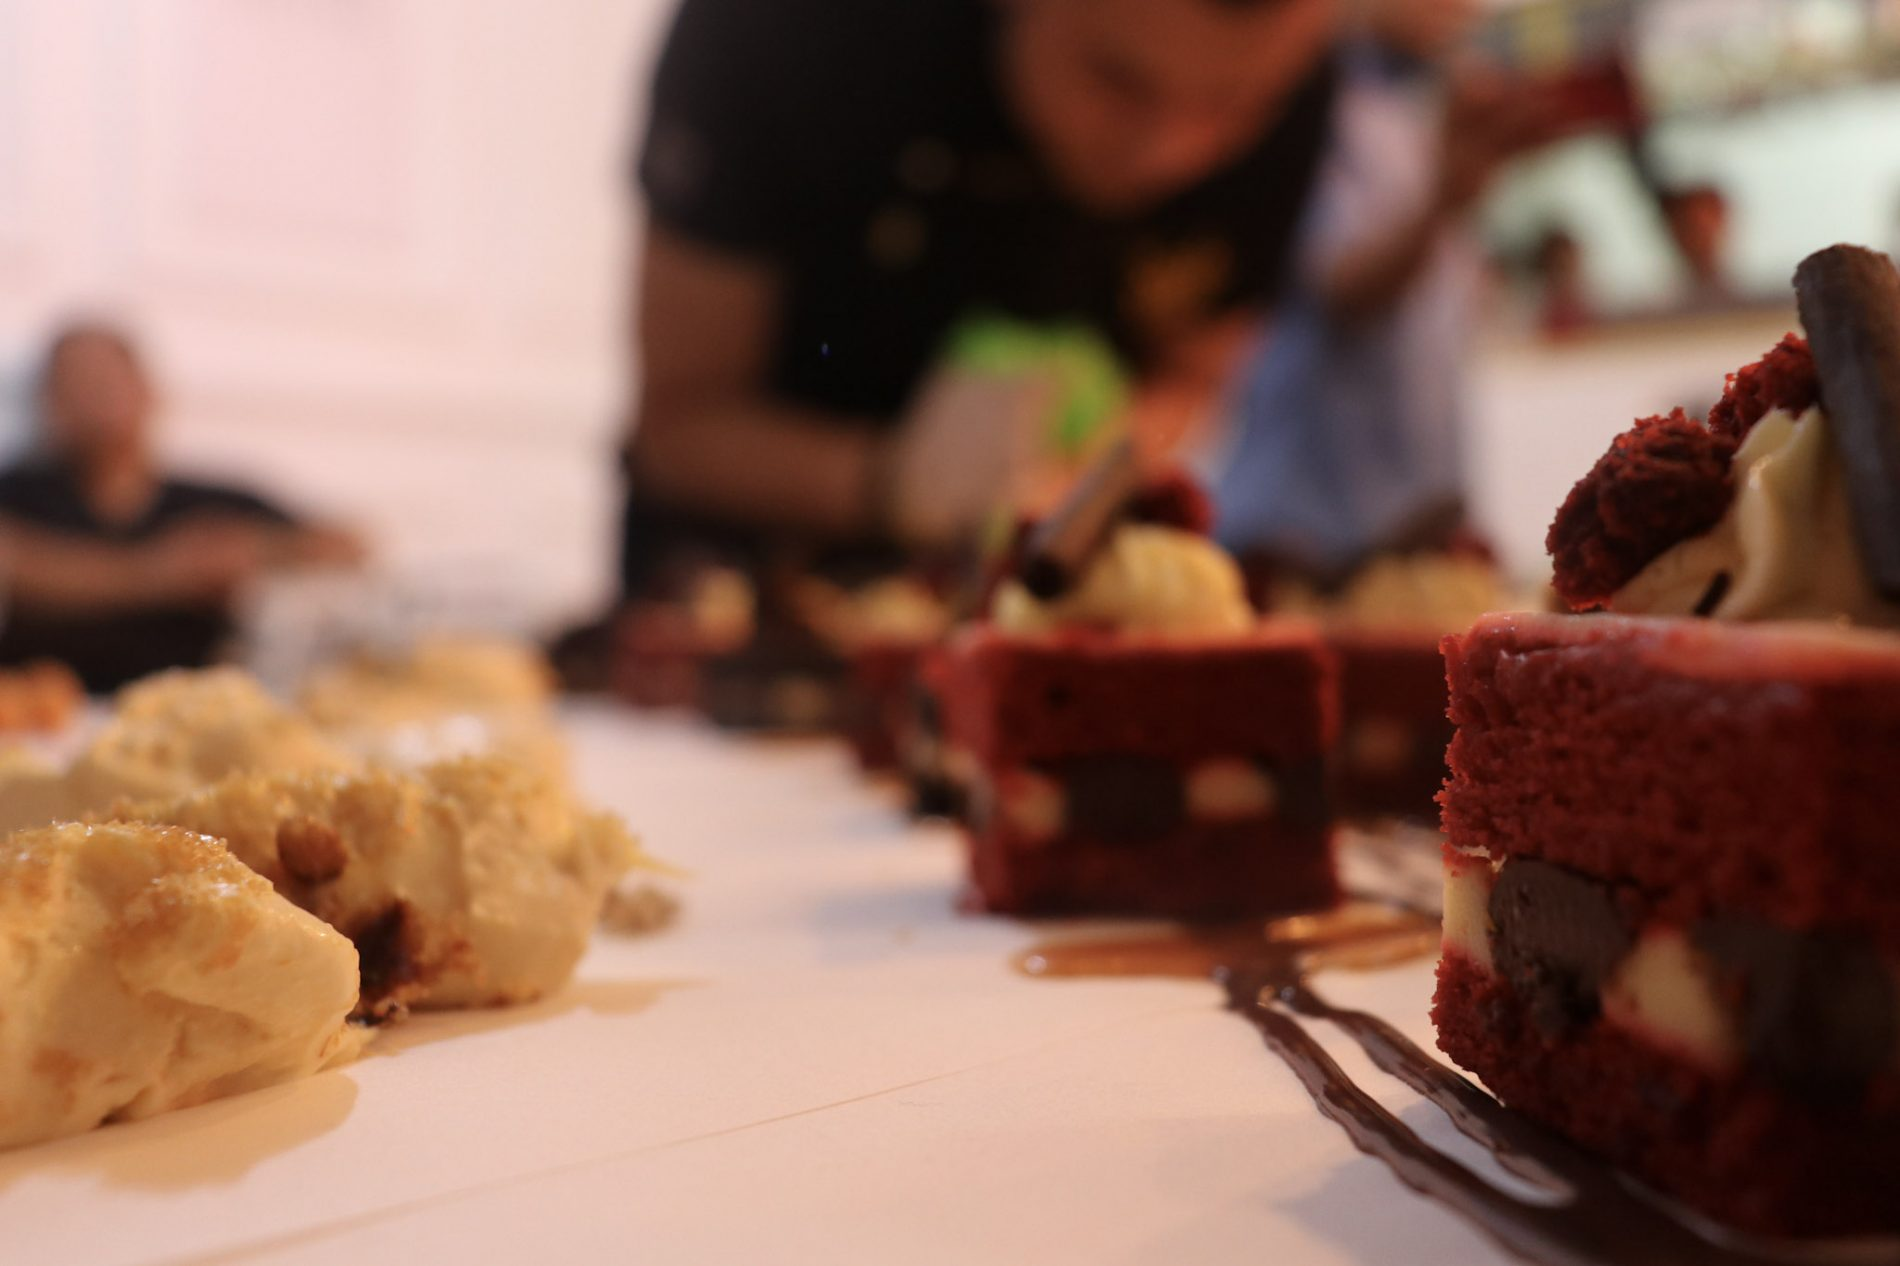 Some of the cakes at Suka Sucre